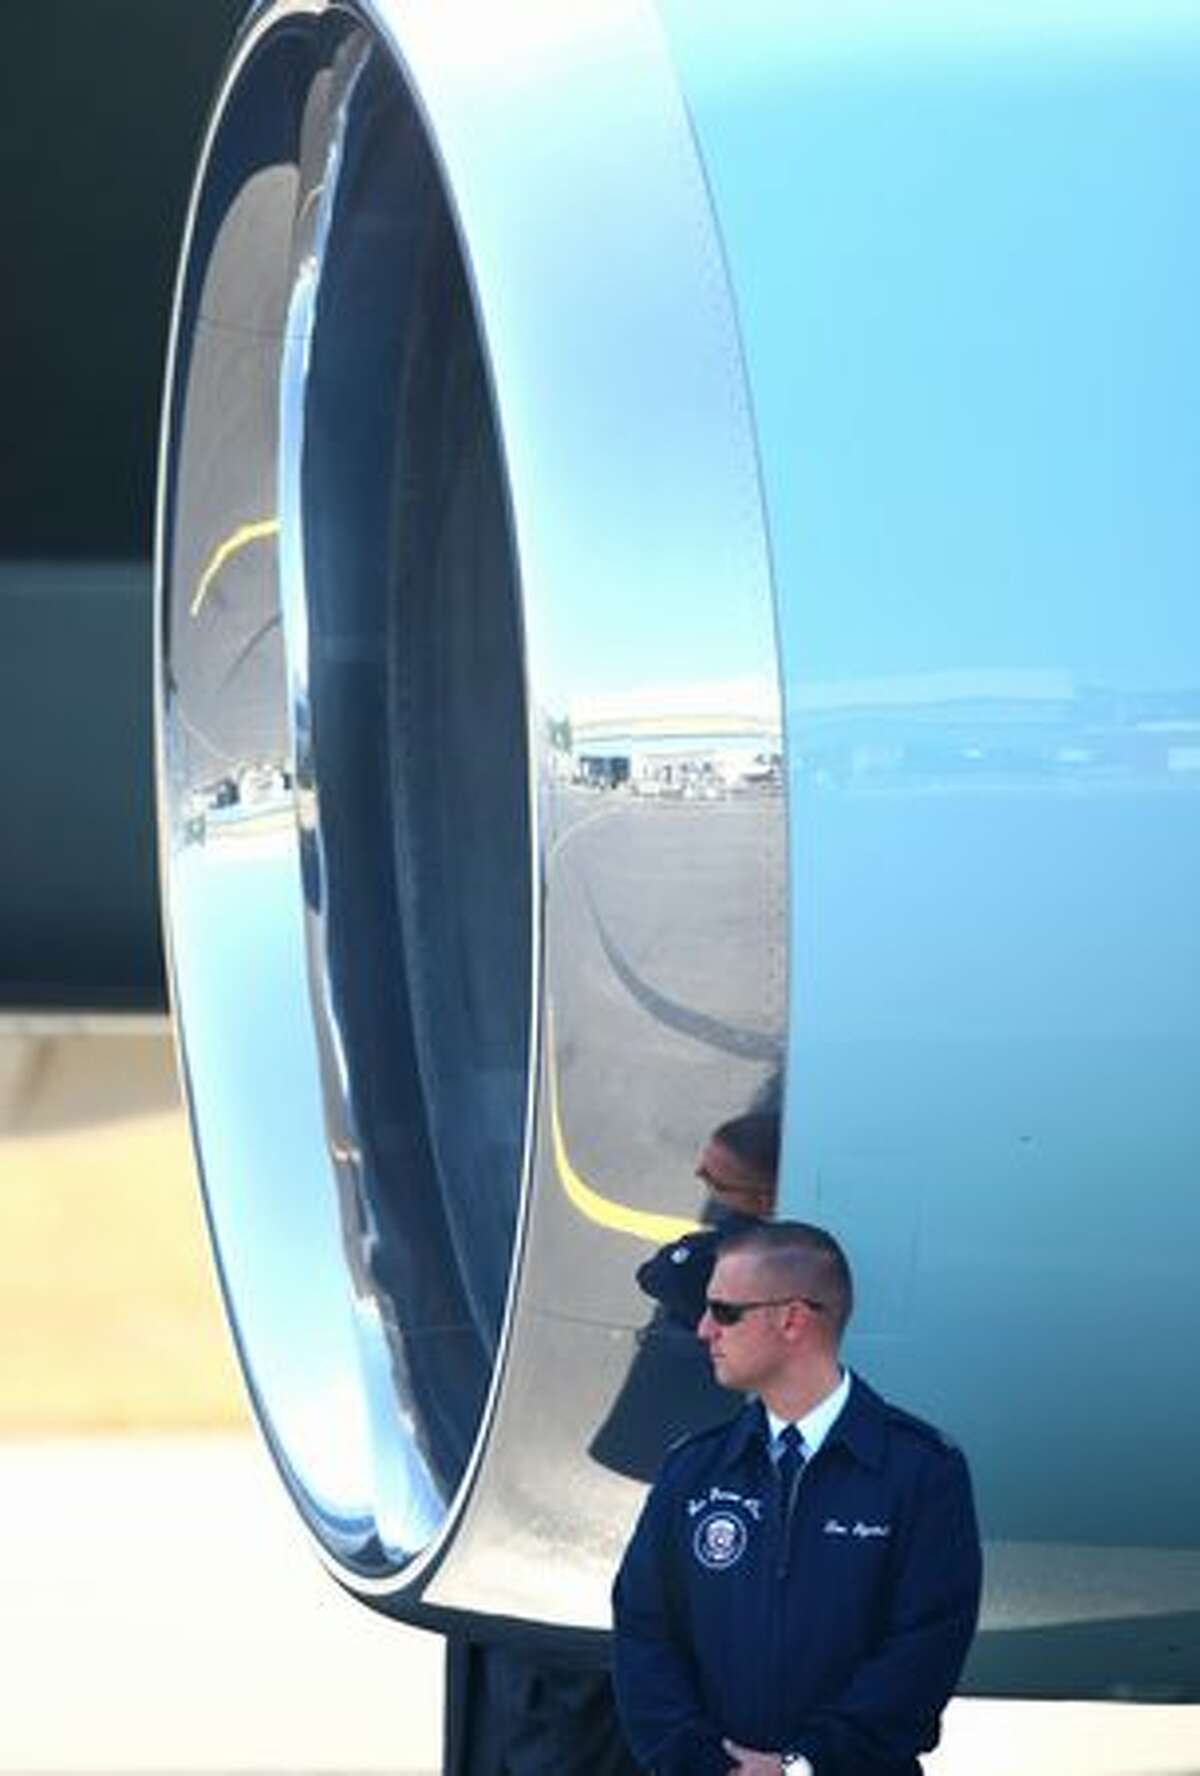 An Air Force airman waits as U.S. President Barack Obama boards Air Force One after a quick fund raising trip to Seattle.